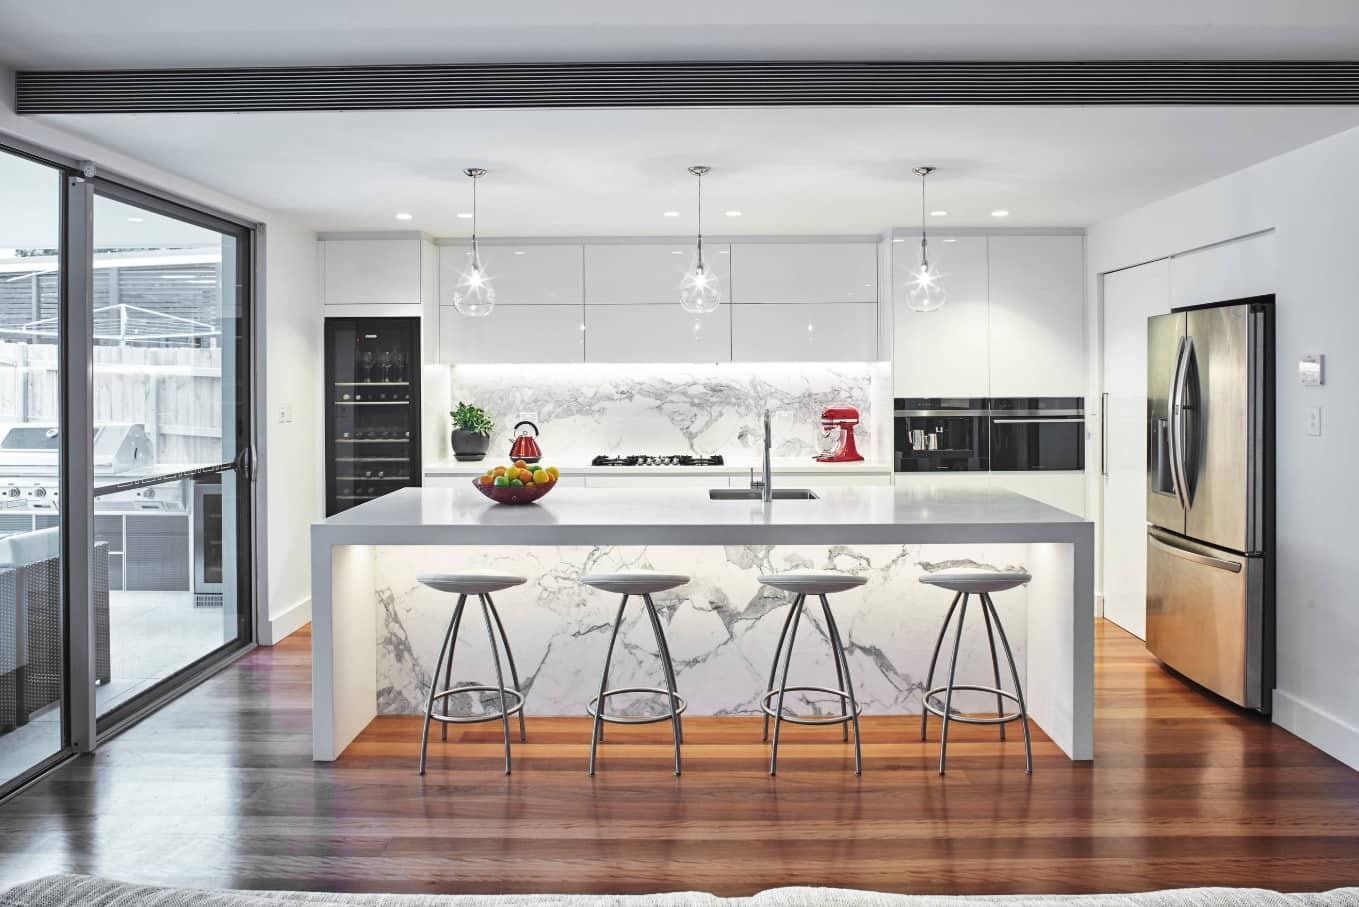 10 Kitchen Interior Design Tips. Marvelous curring edge technological space full of light